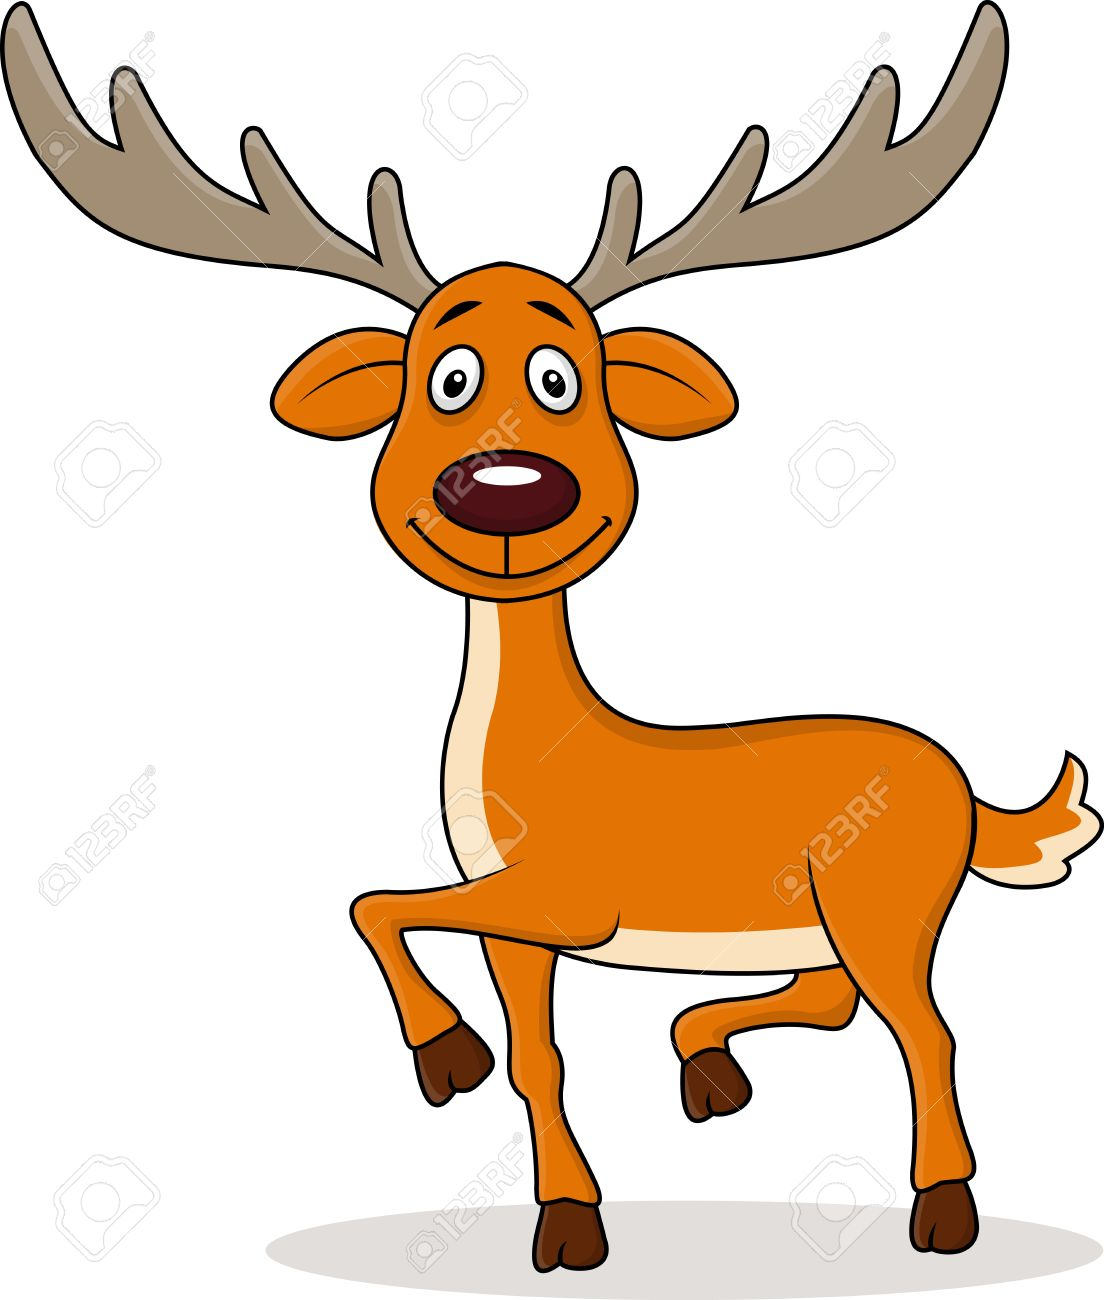 Deer Cartoon Royalty Free Cliparts, Vectors, And Stock.